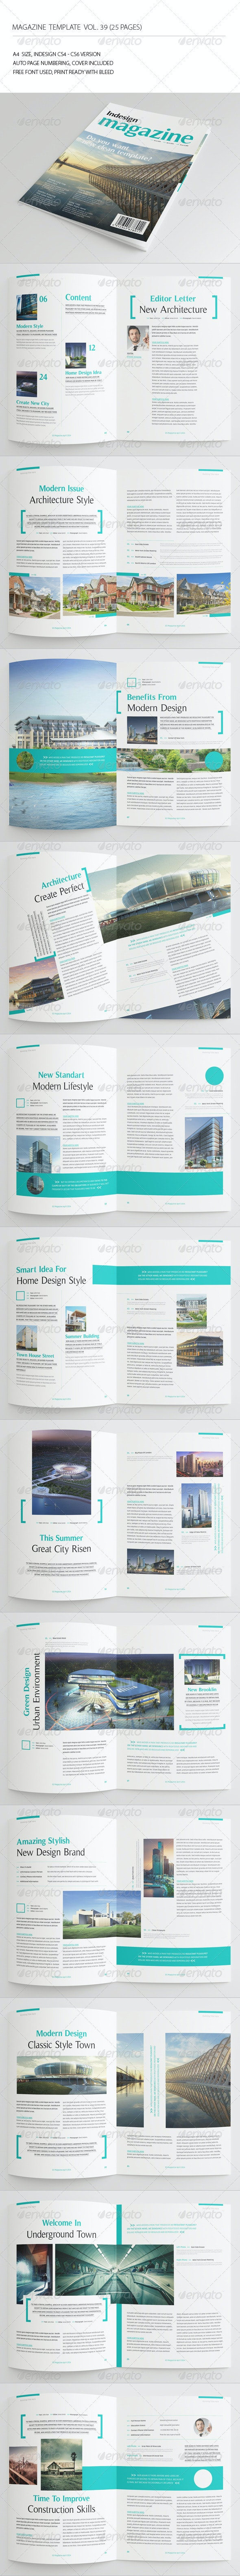 25 Pages Architecture Magazine Vol39 - Magazines Print Templates